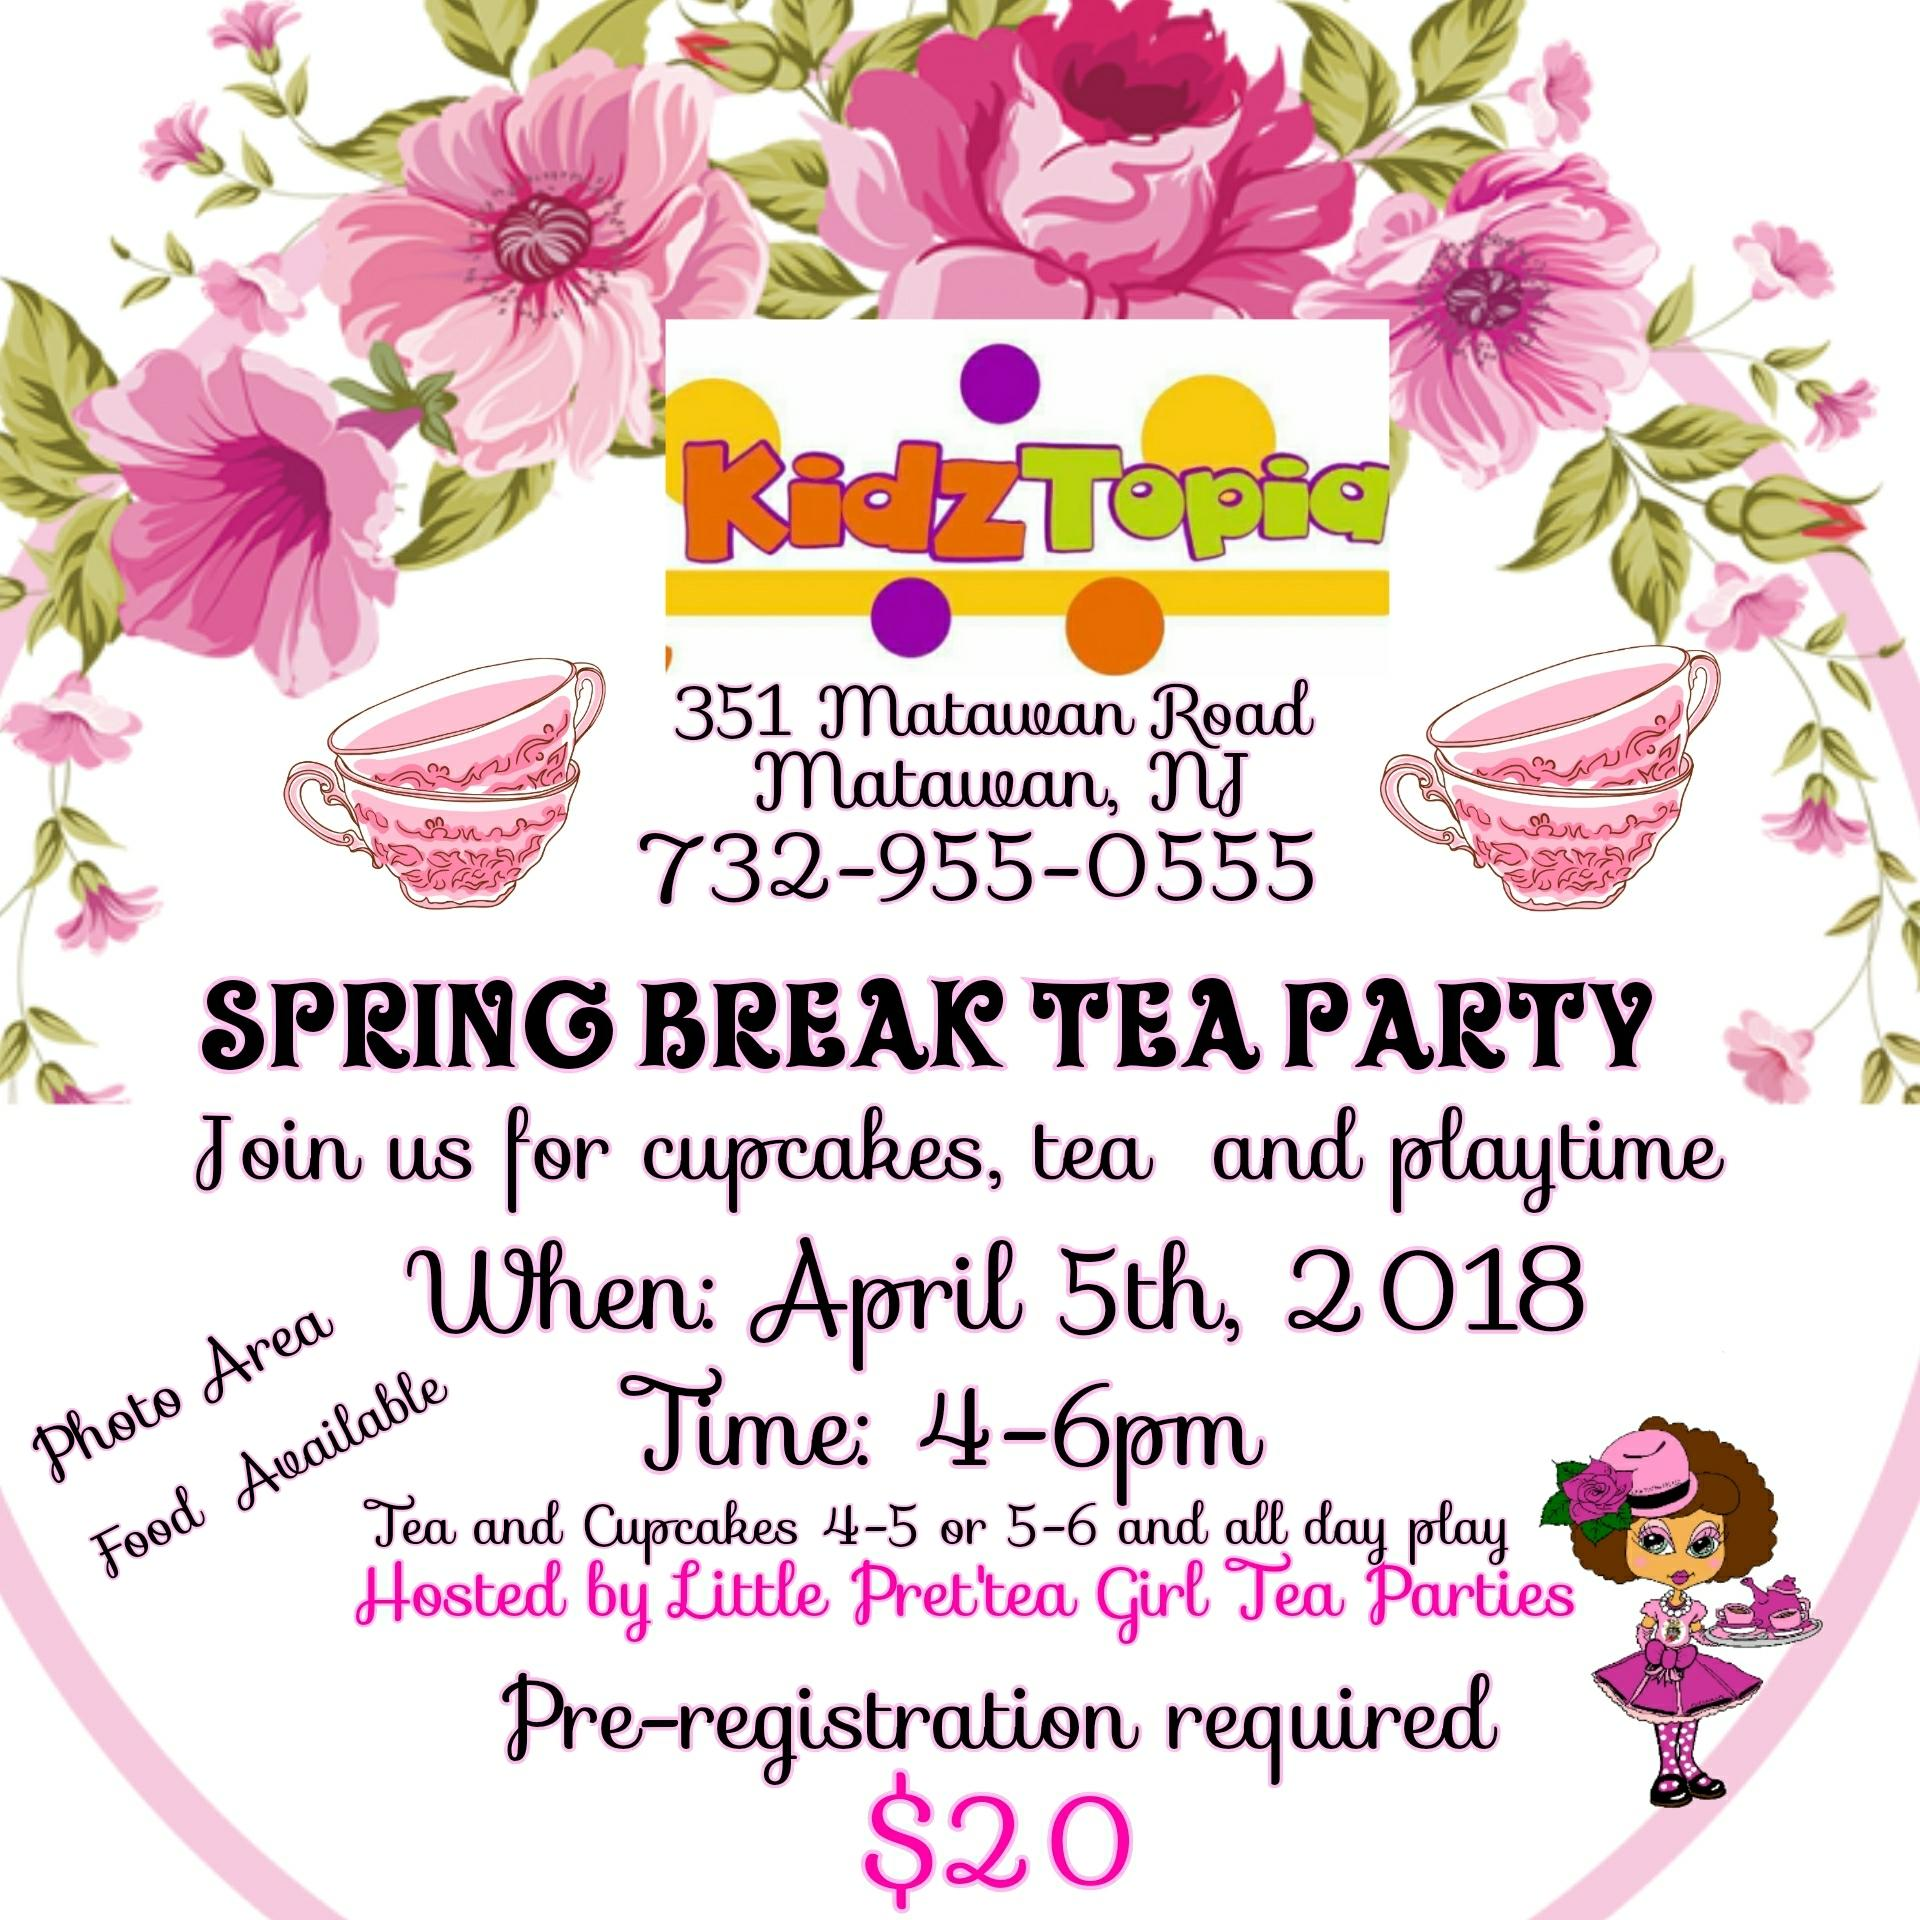 Spring Break Tea Party 5 Apr 2018